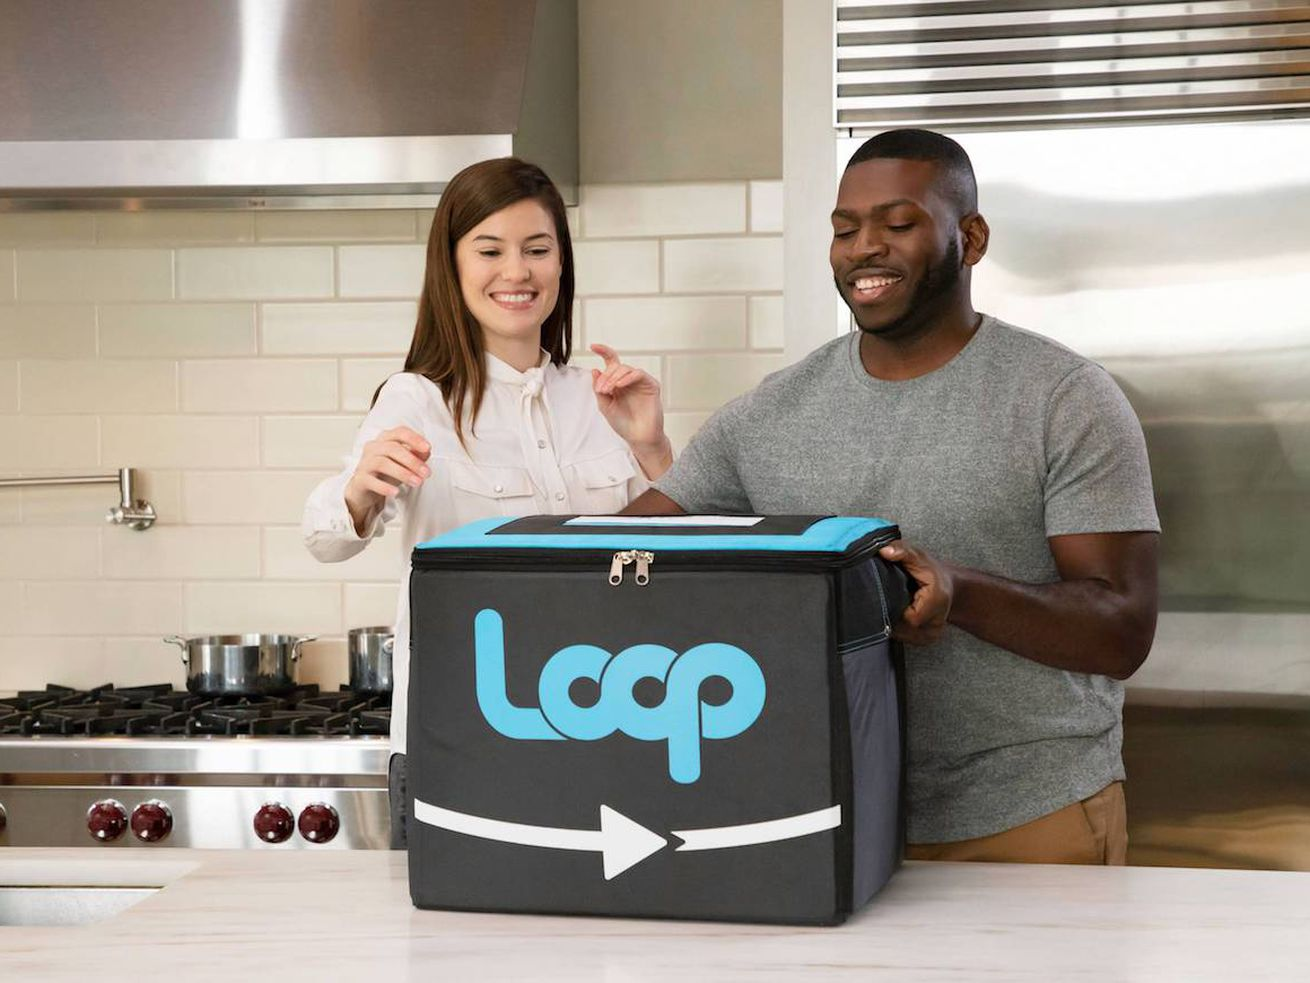 Loop, a new zero-waste platform attempting to mainstream the concept of selling consumer brands in reusable packaging, is now partnering with apartment buildings.